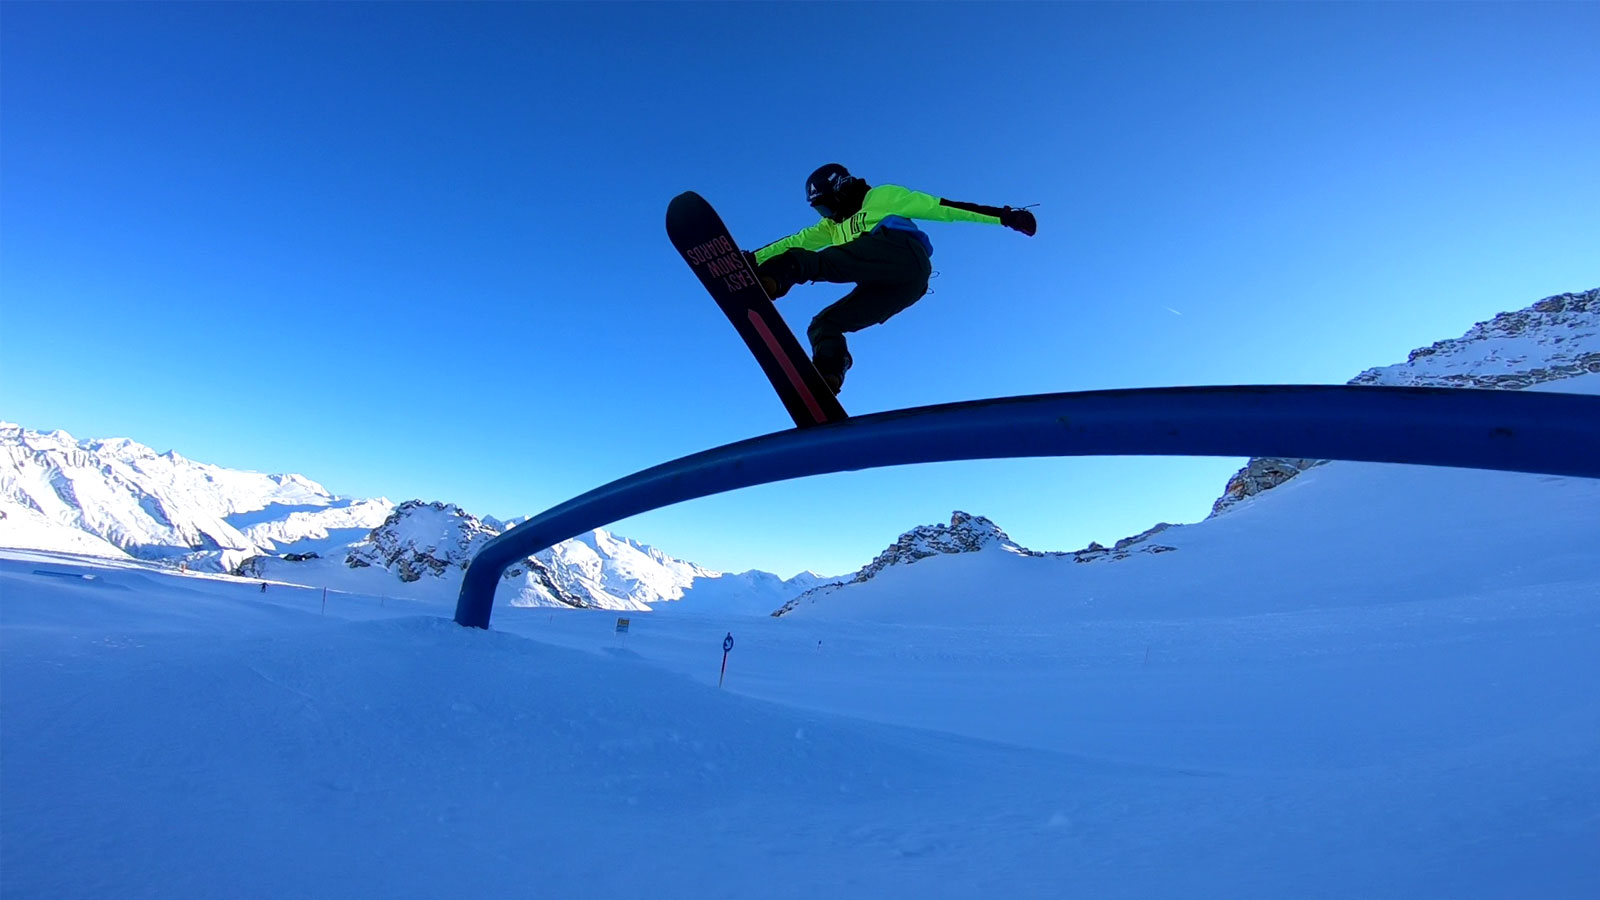 Easy FW20/21 Snowboard Preview